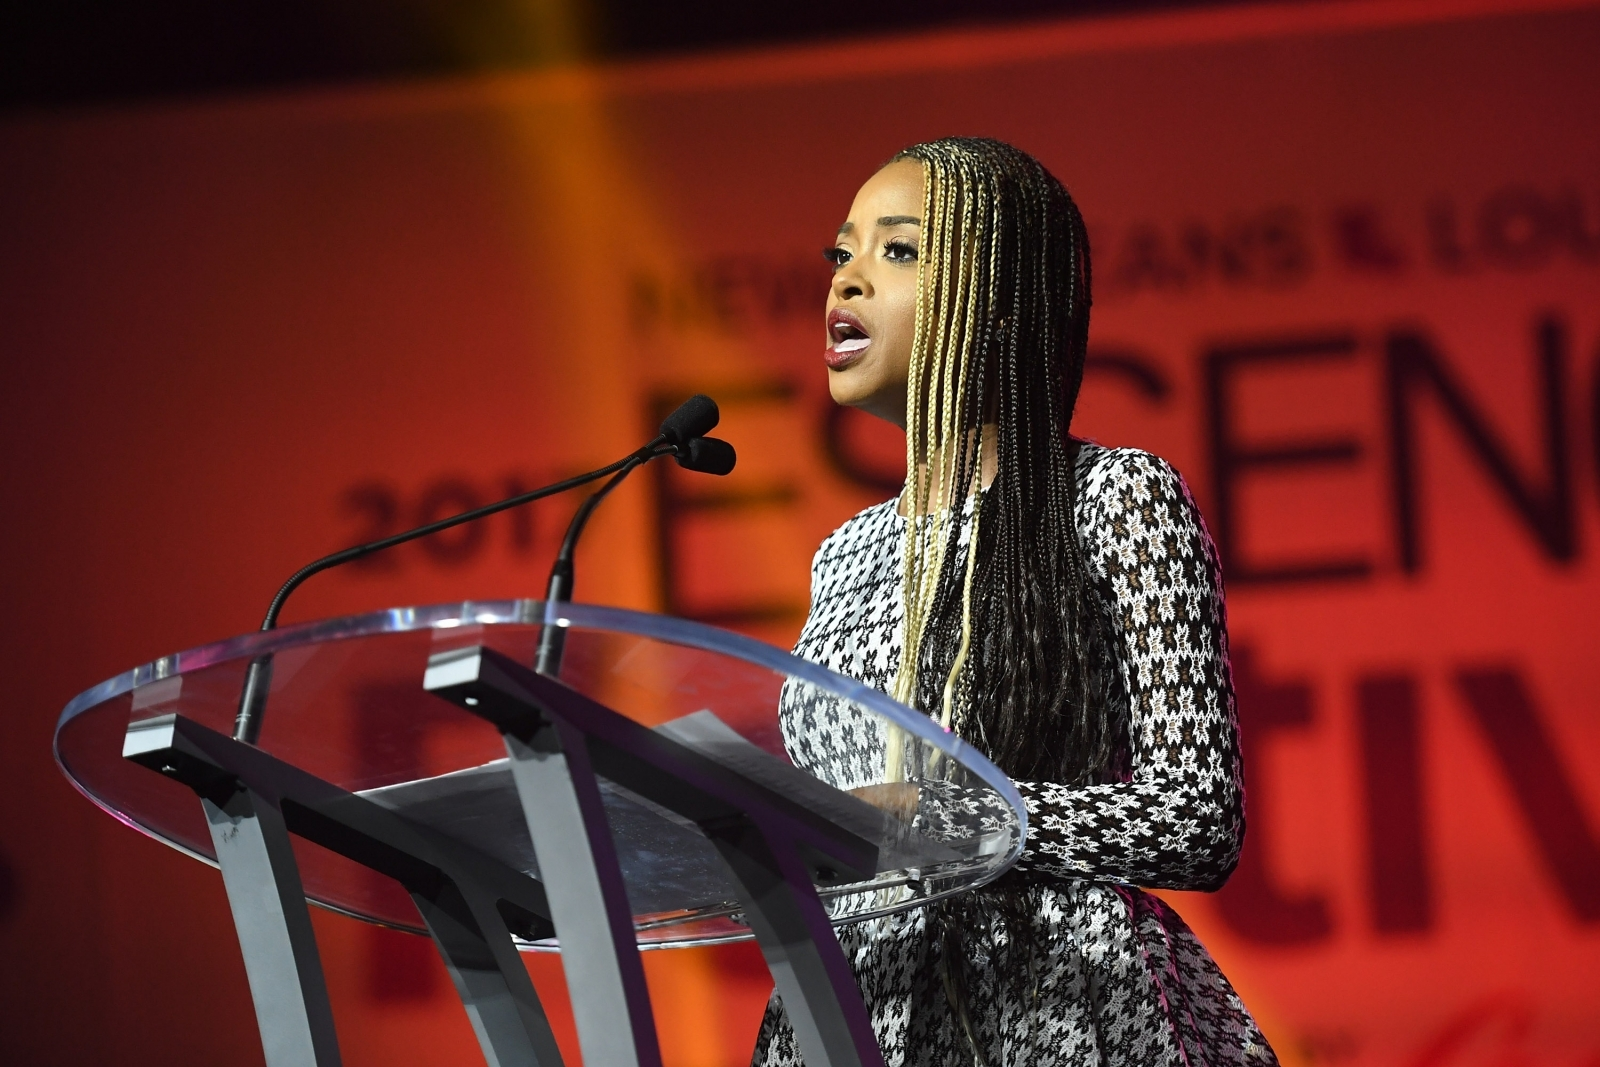 Activist Tamika Mallory kicked off American Airlines flight by pilot